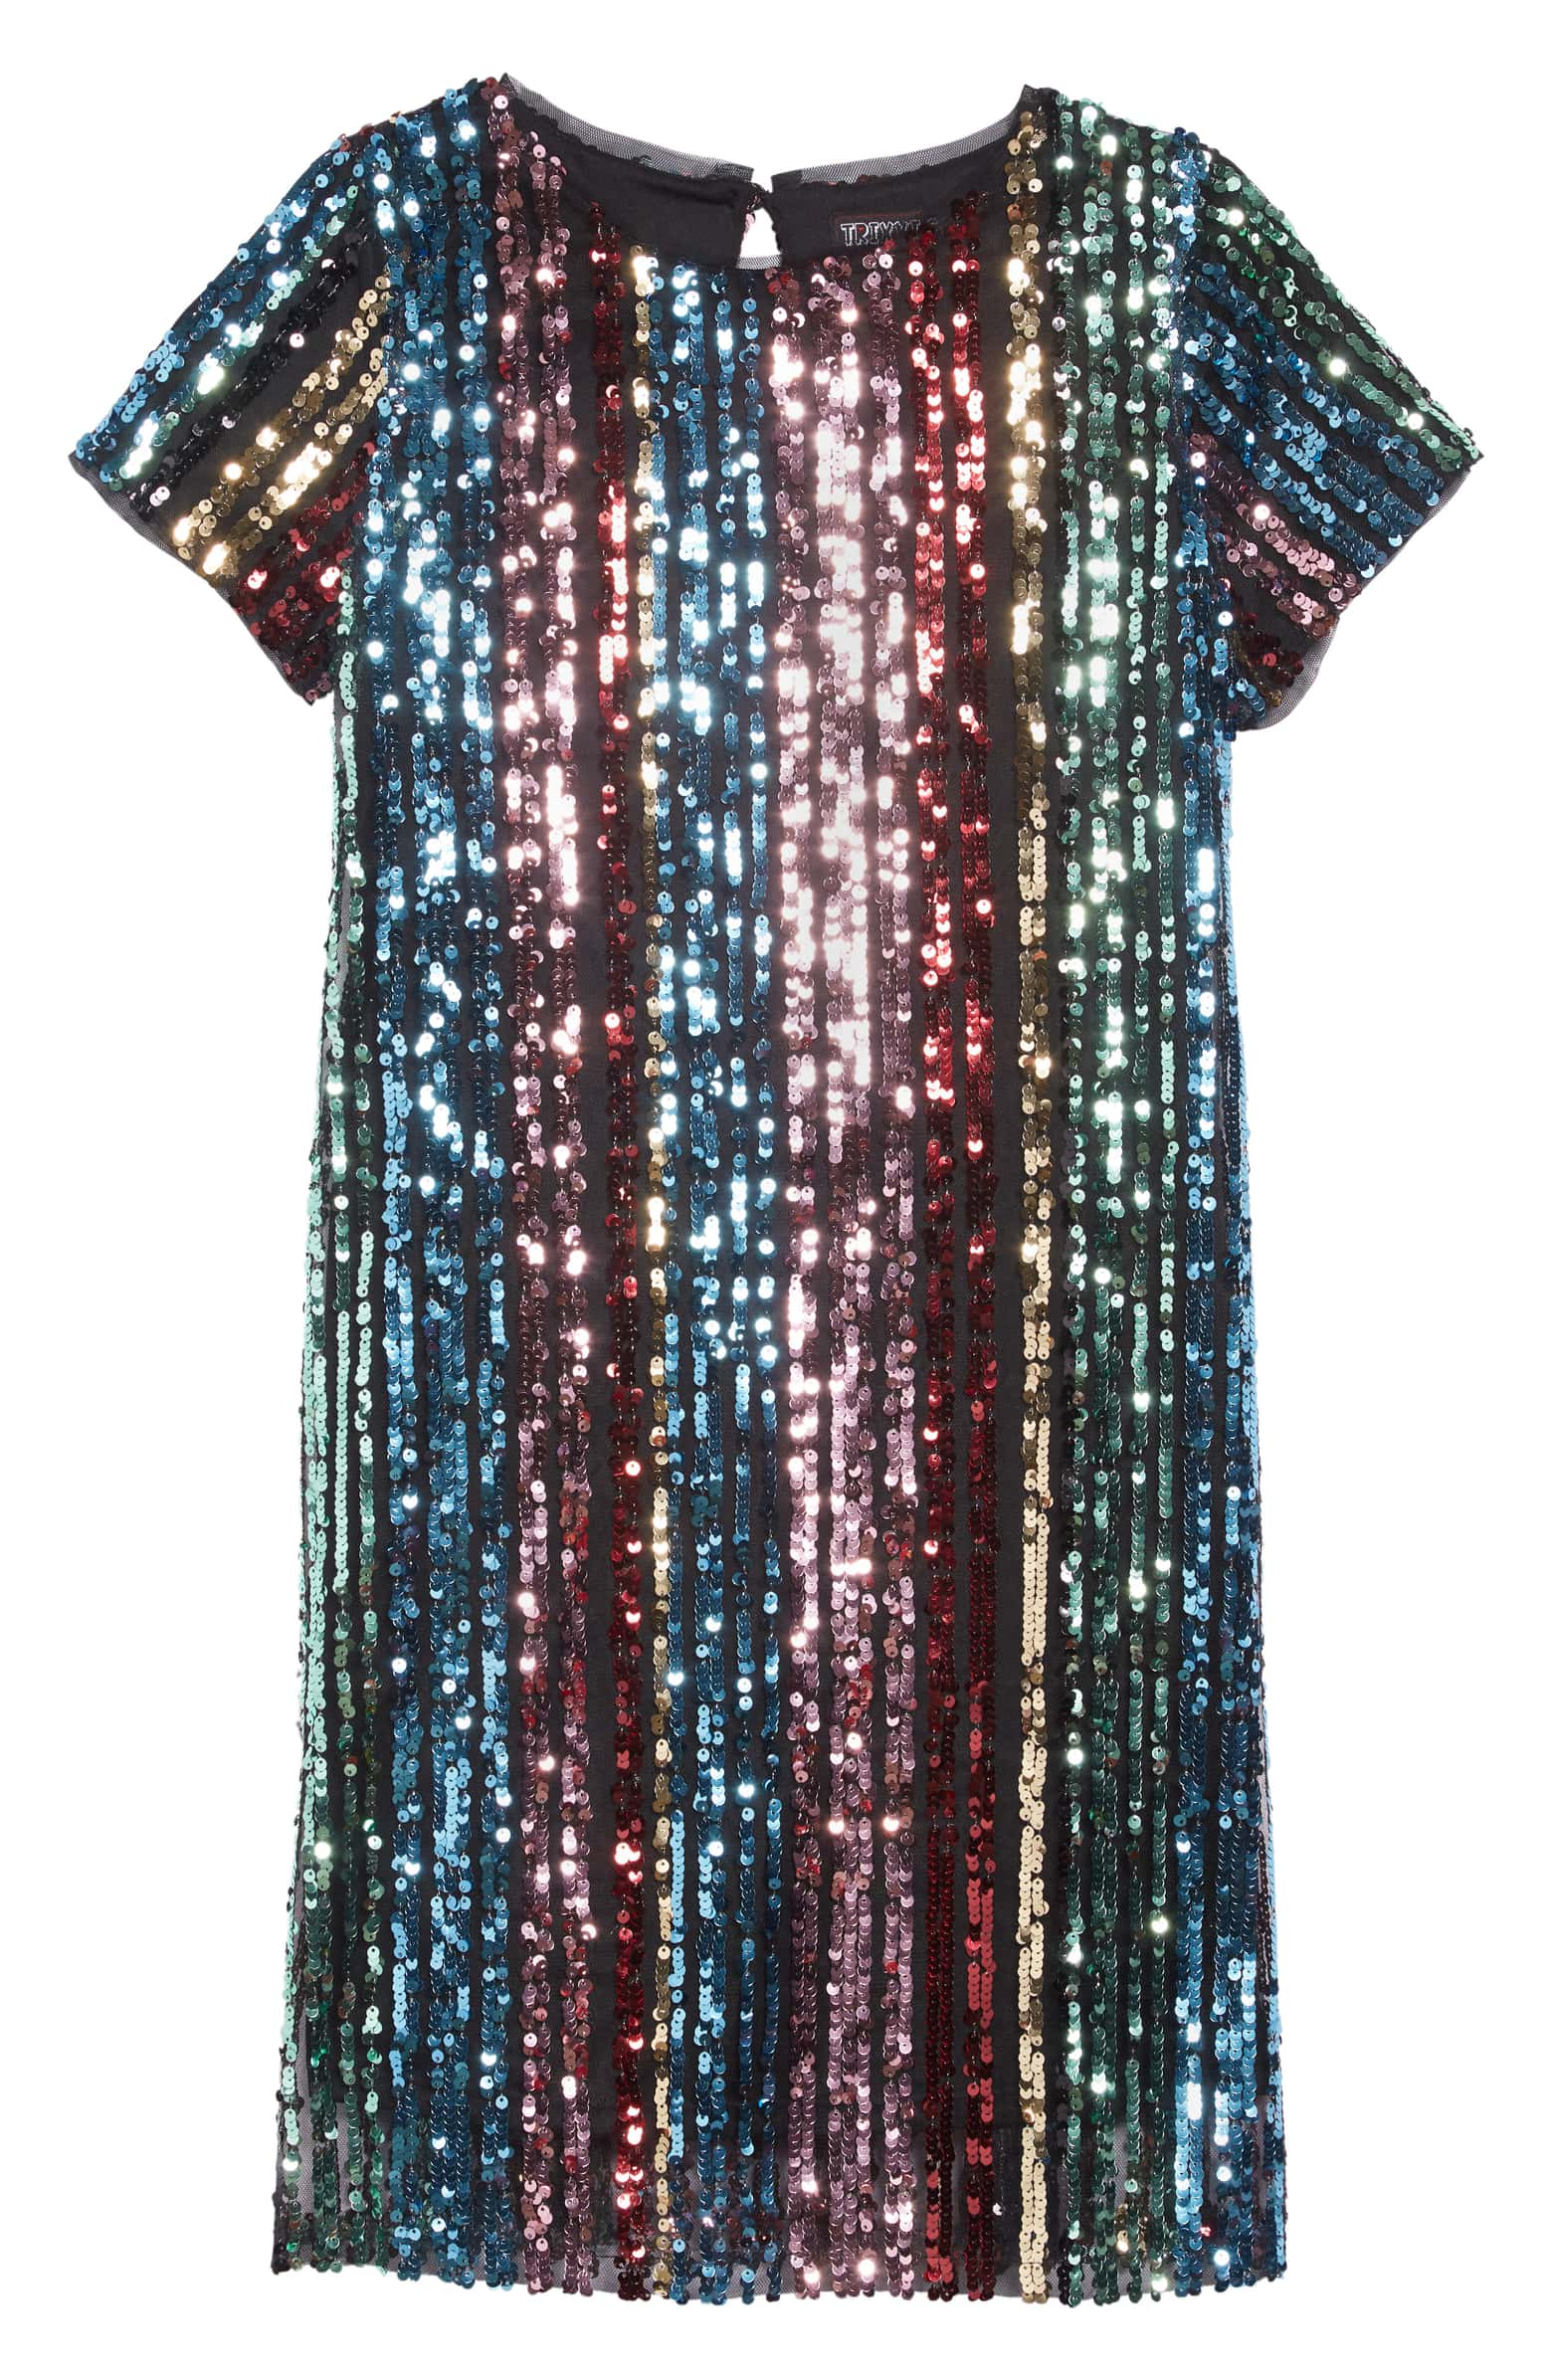 77dbd34912e0 Trixxi rainbow sequin stripe dress, $54 USD, nordstrom.com